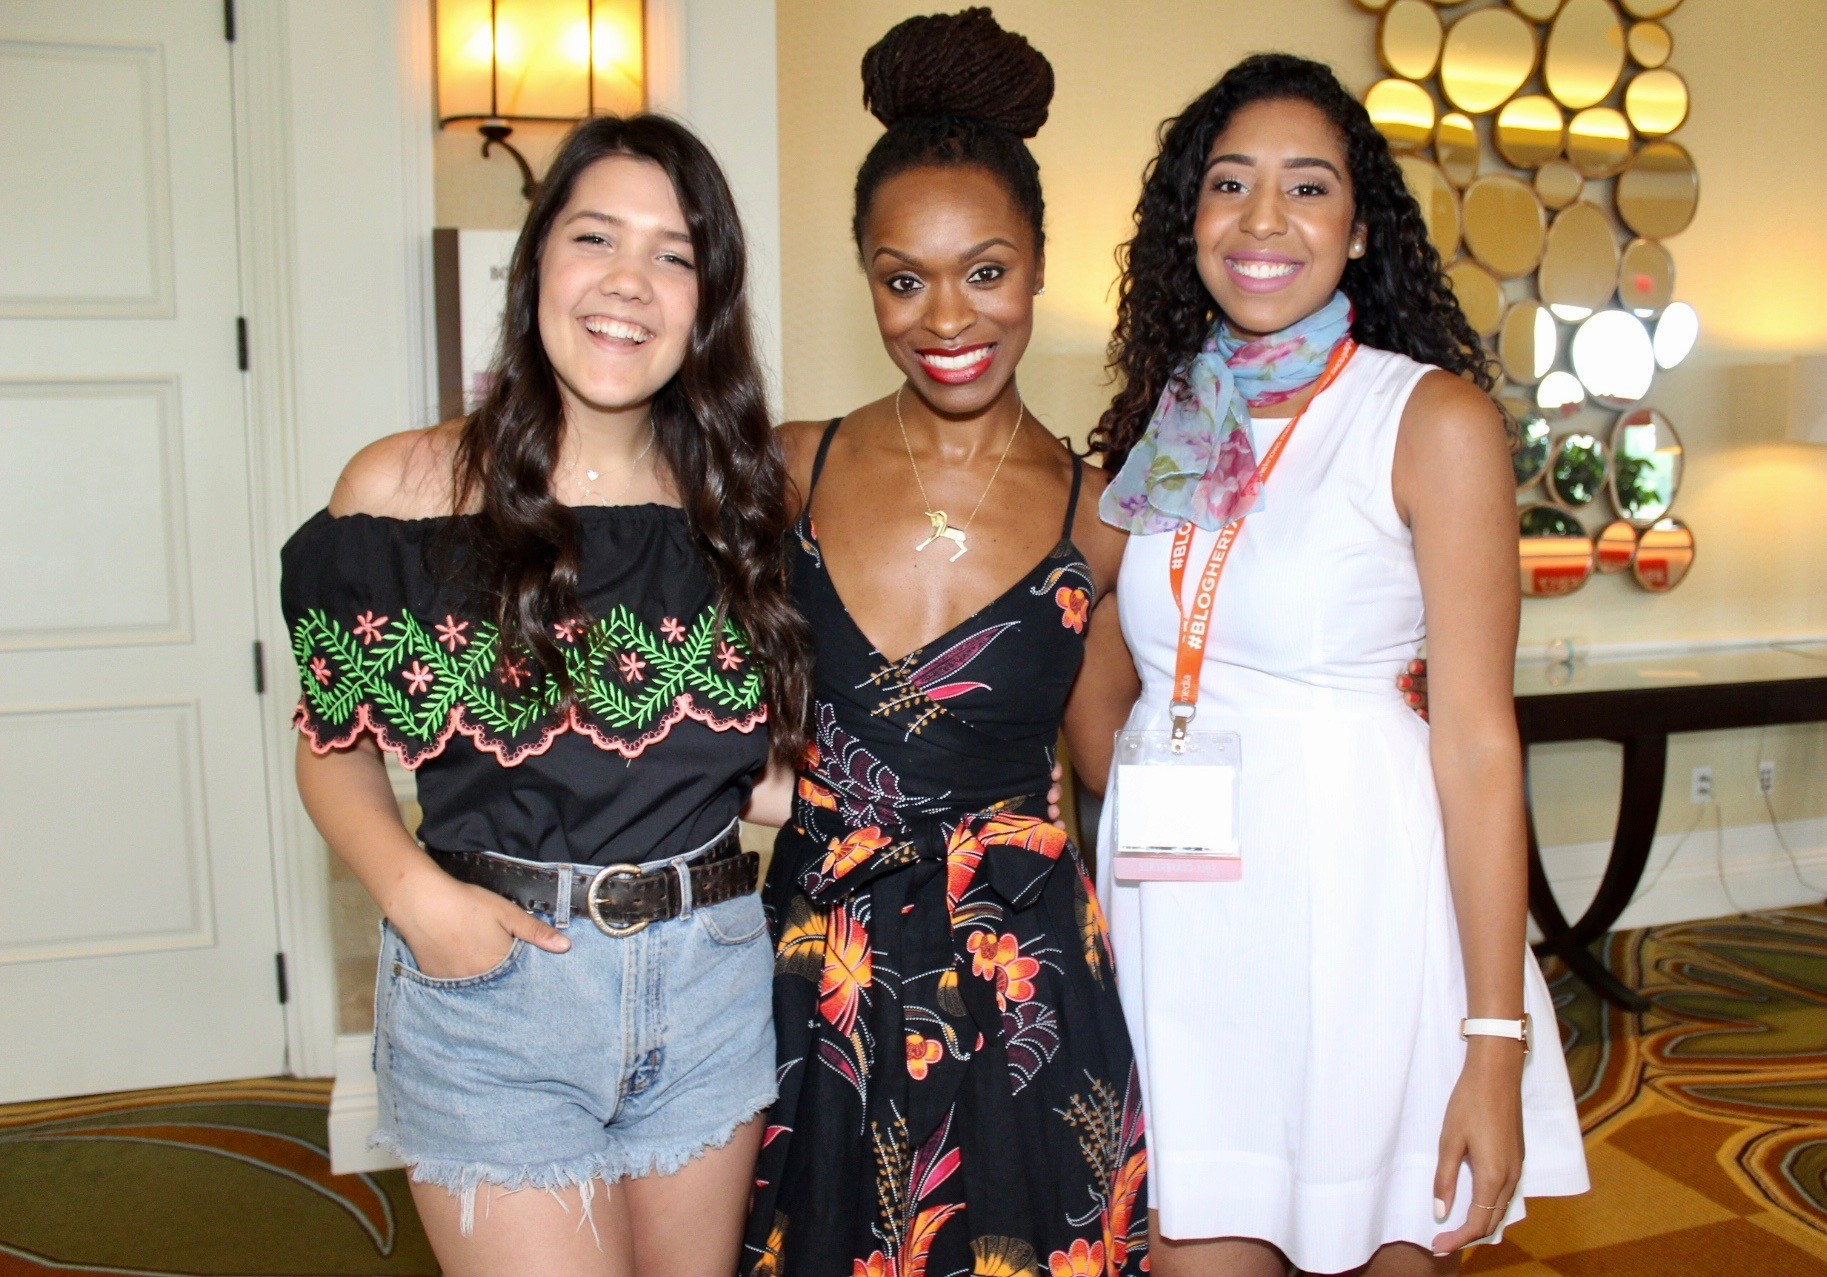 BLOGHER17 CONFERENCE FULL RECAP